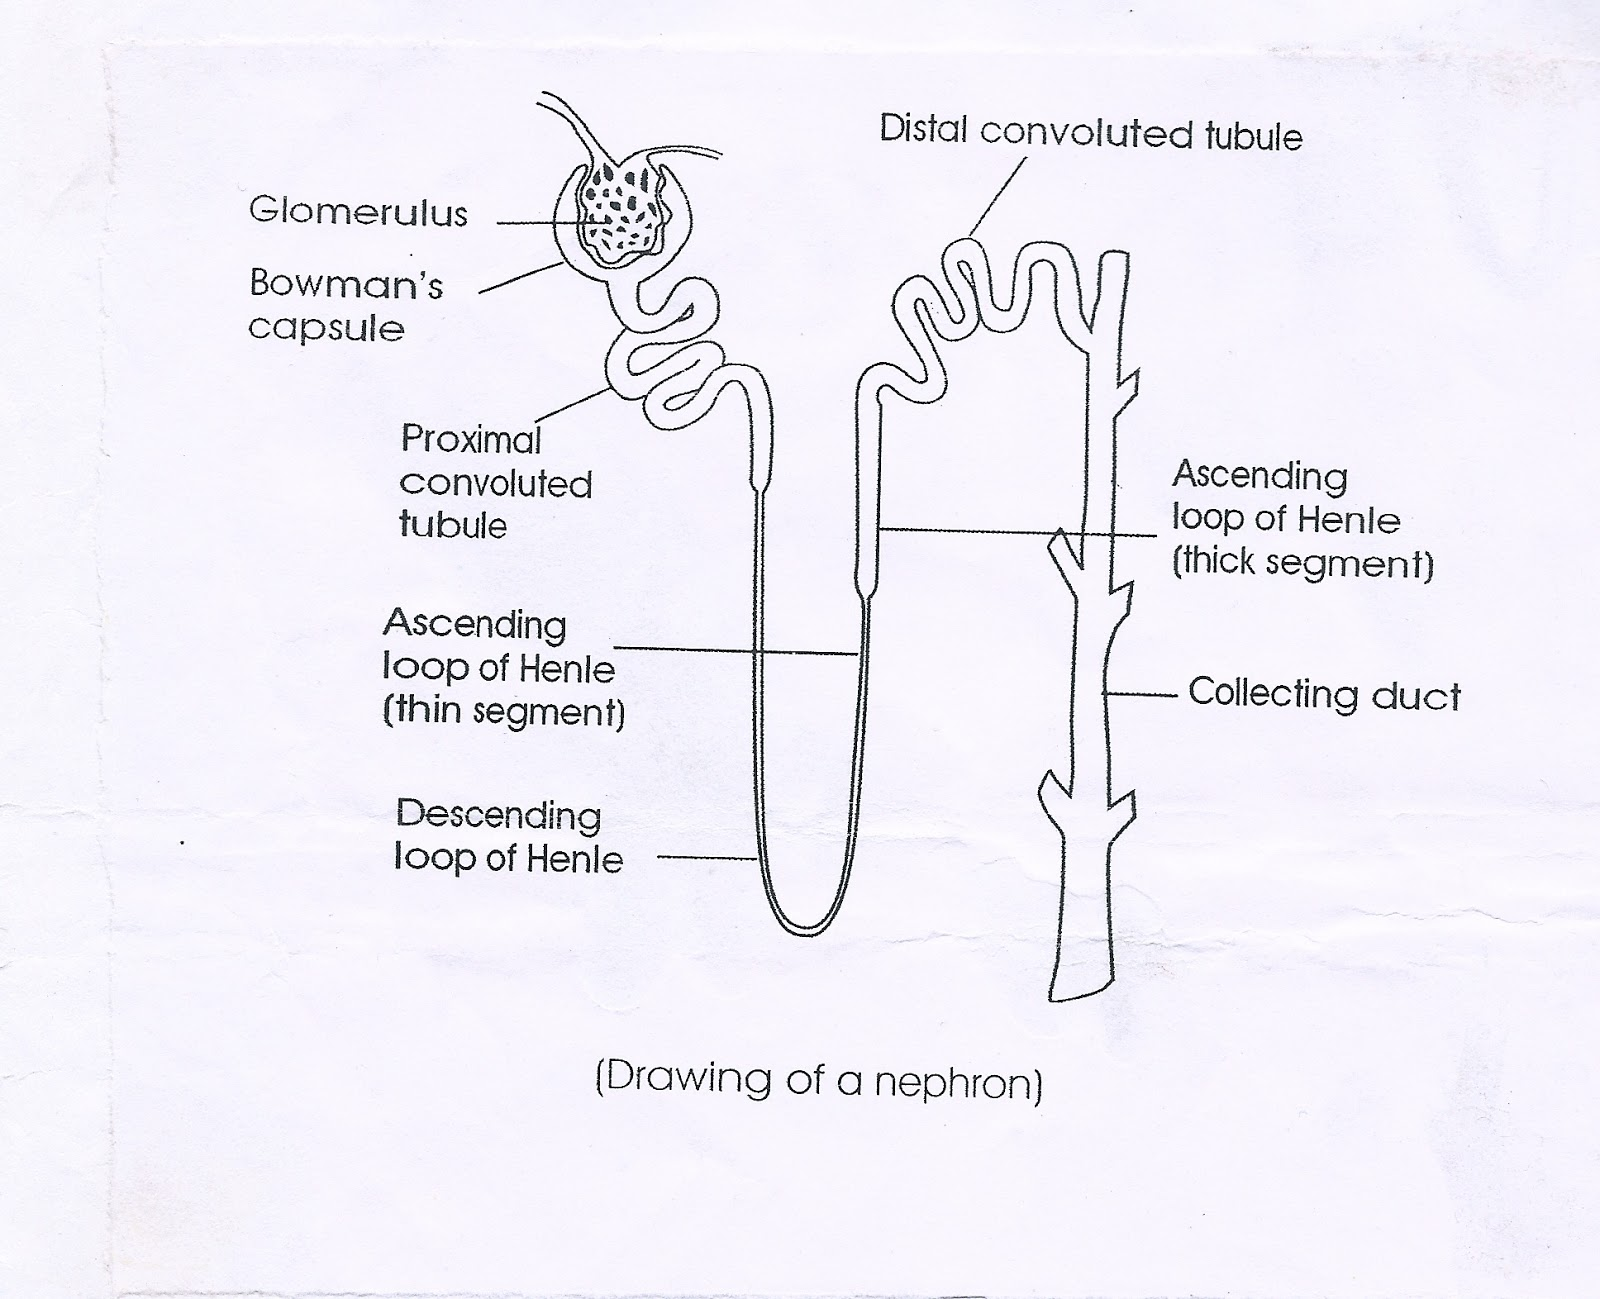 excretory system diagram labeled mini usb wire urinary diagrams to label earth 39s layers